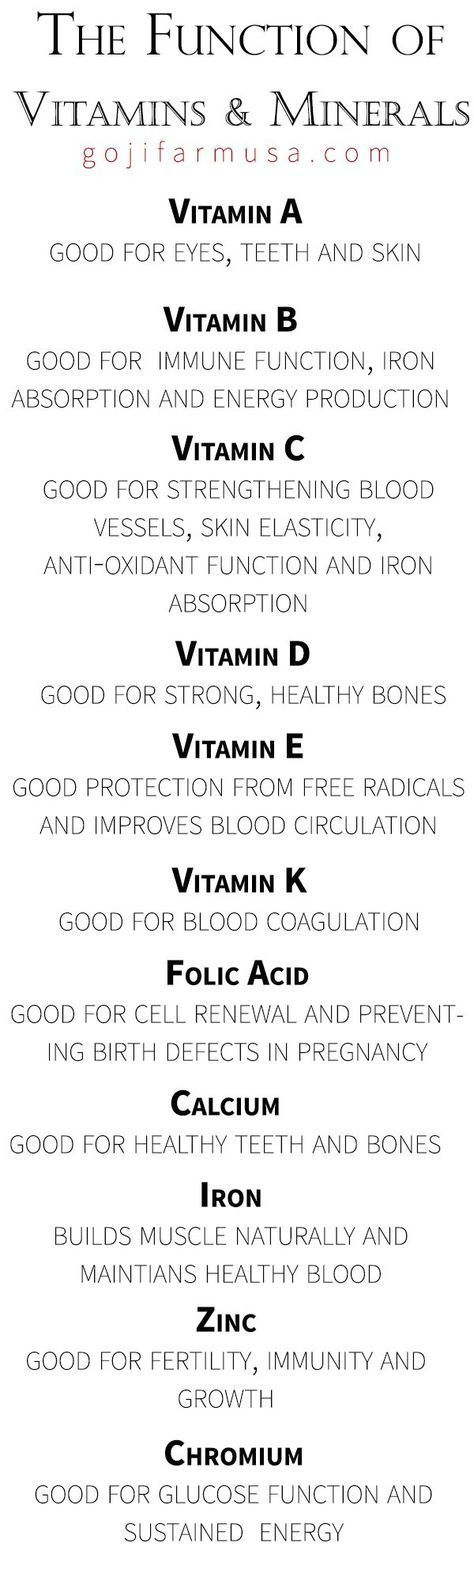 Vitamins and Minerals #health #wellness